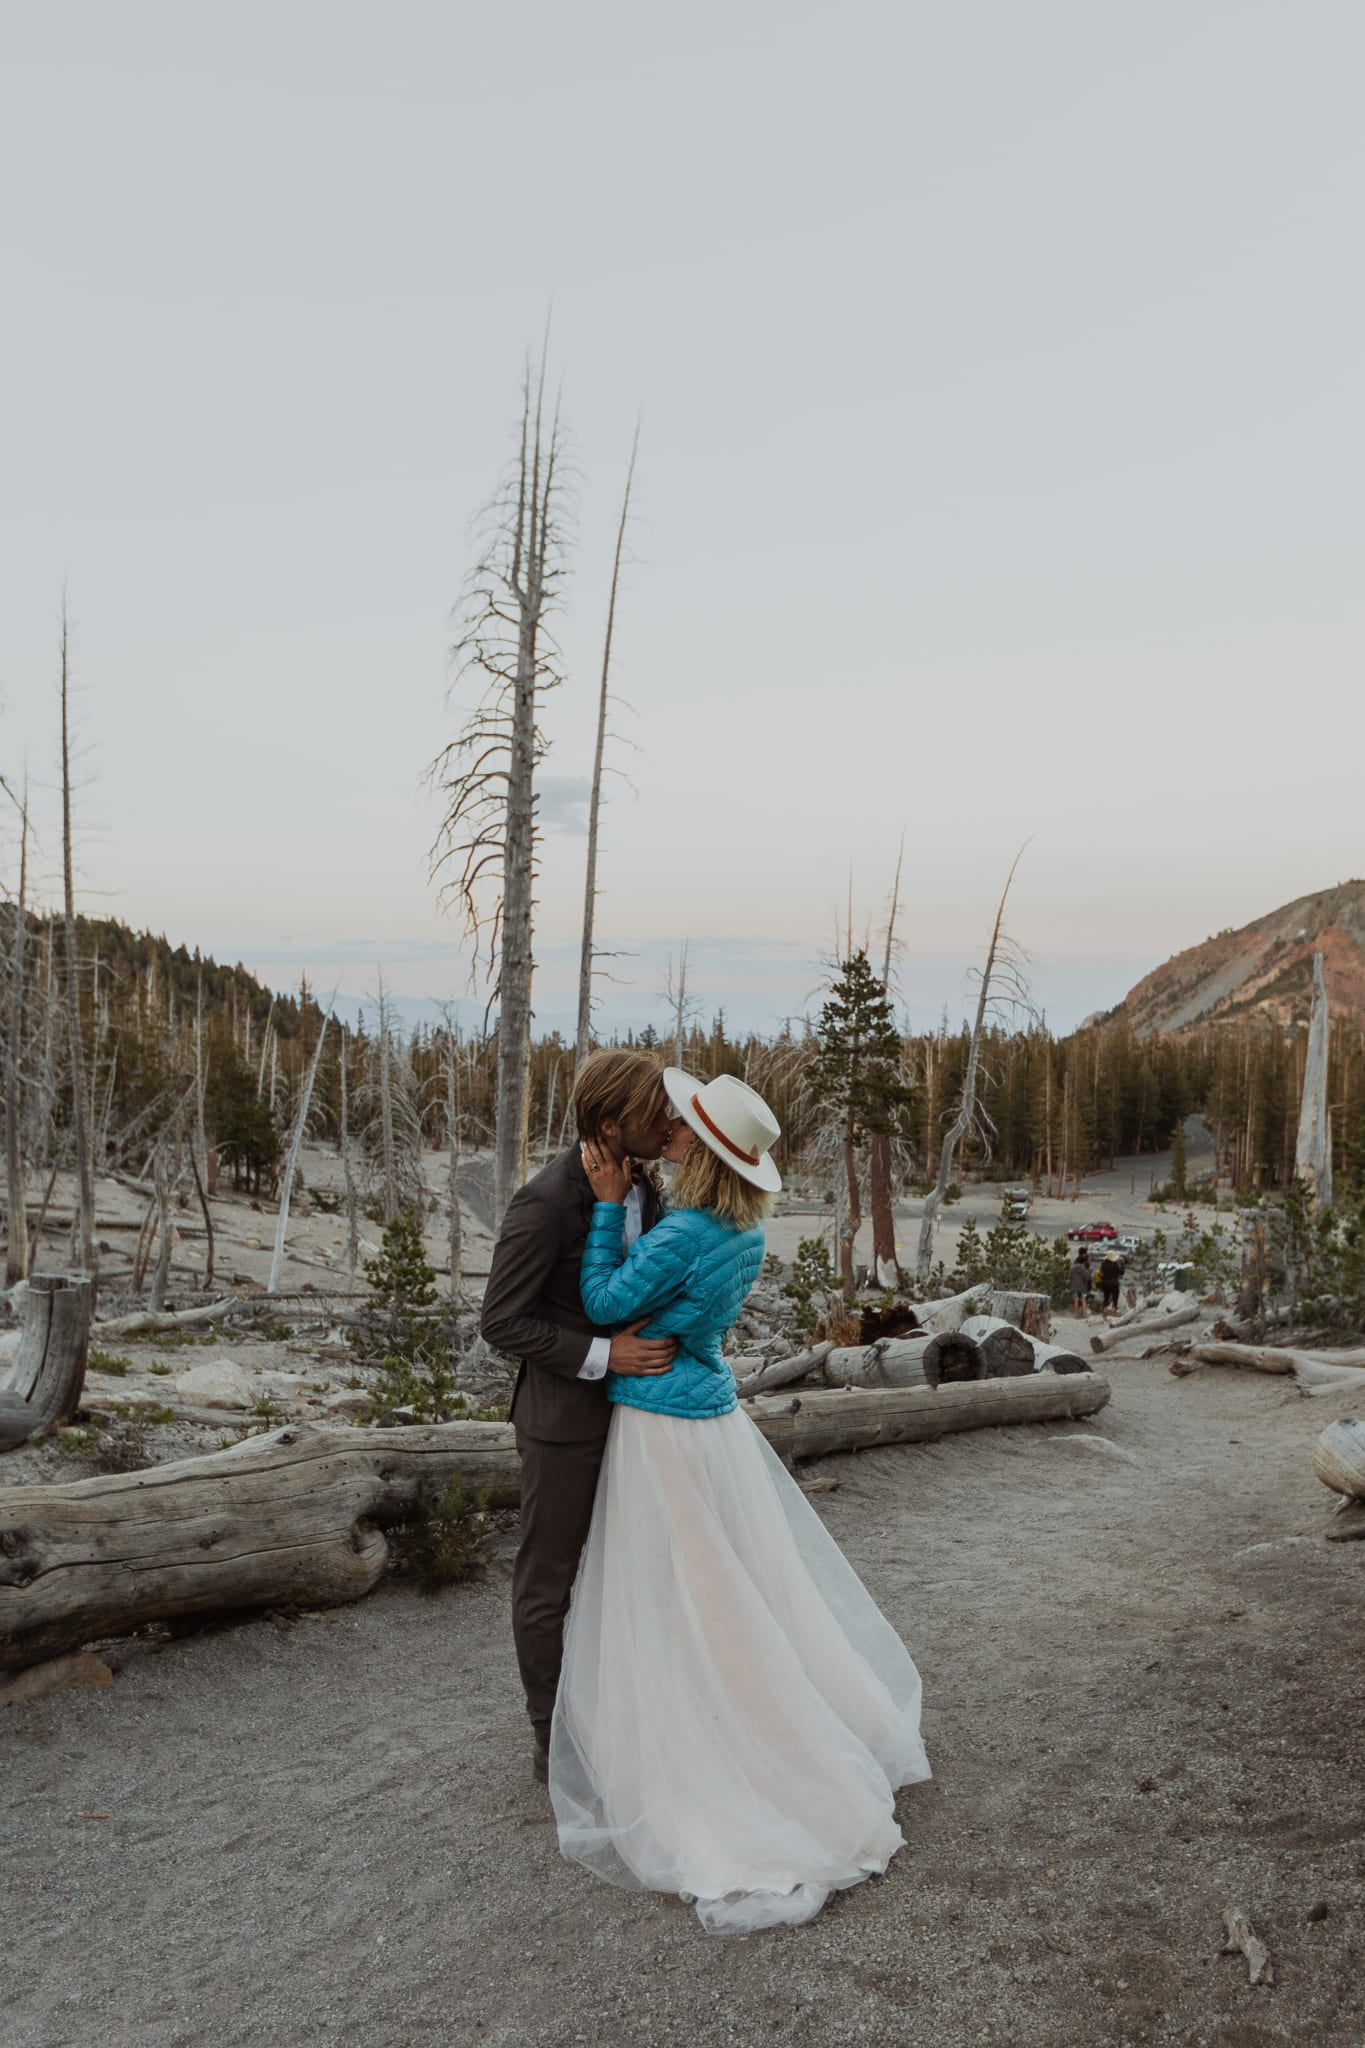 Tyler and Haylee share a kiss amidst dead trees by Horseshoe Lake.